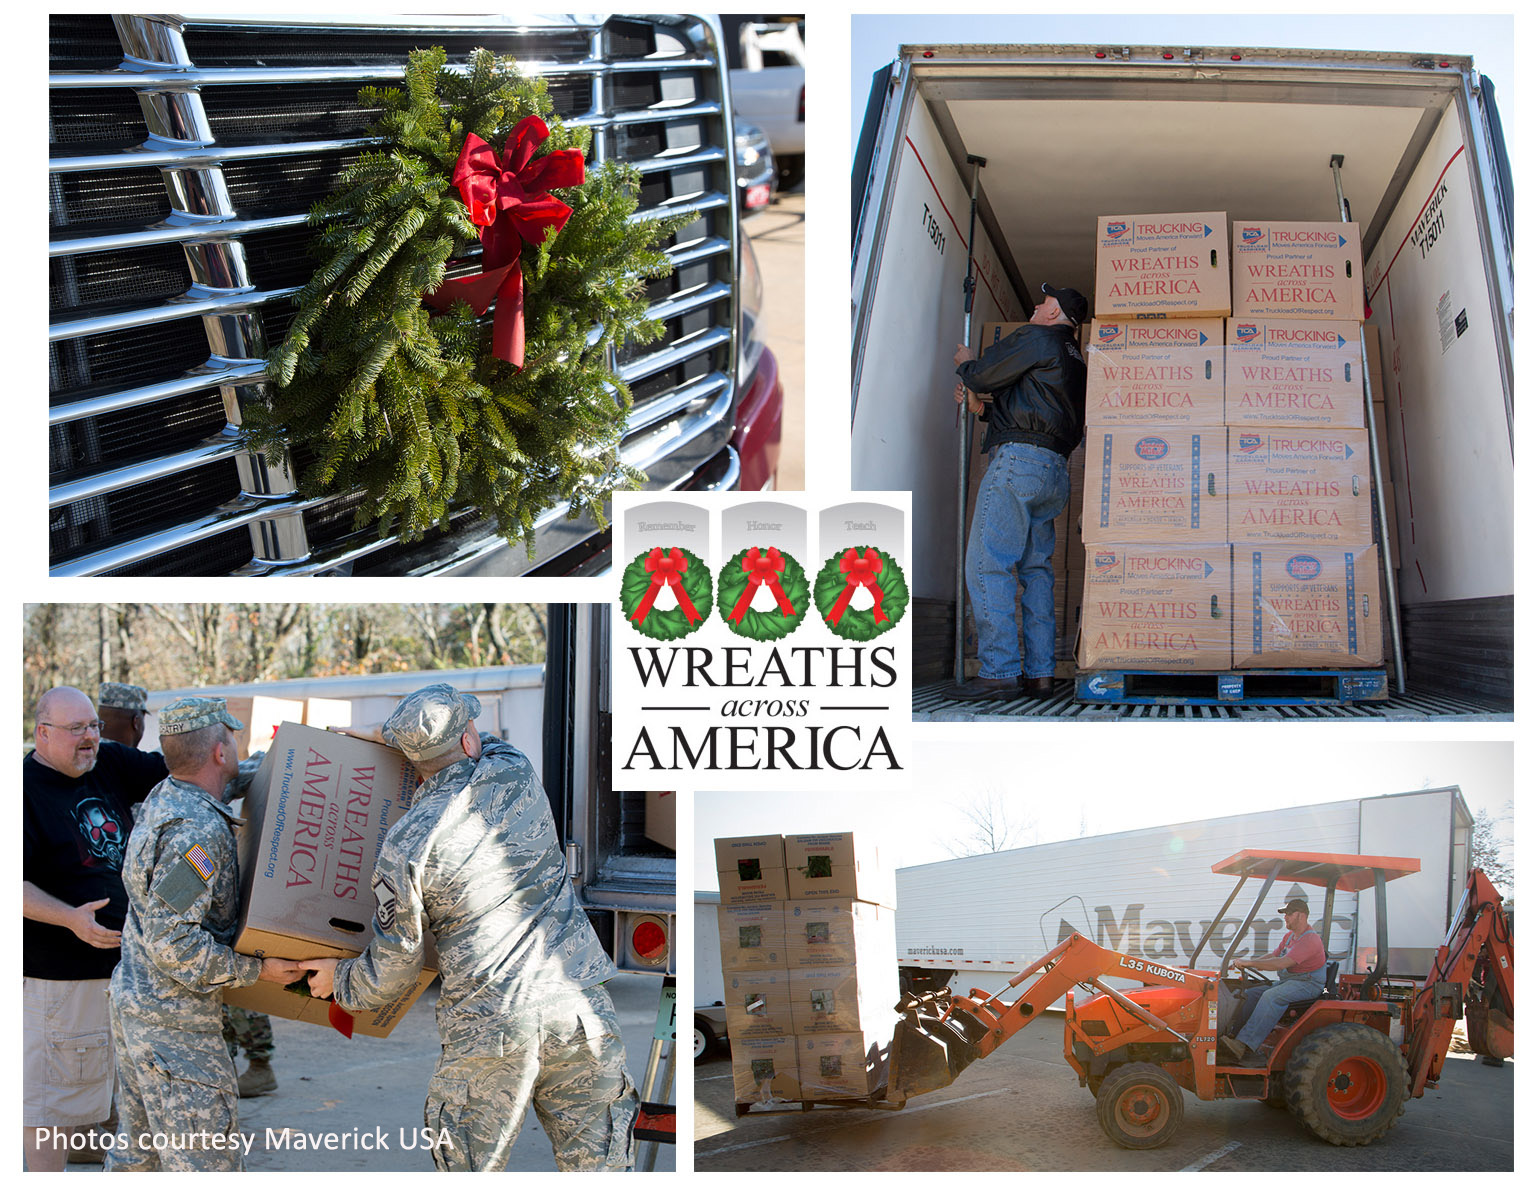 Trucking Wreaths Across America